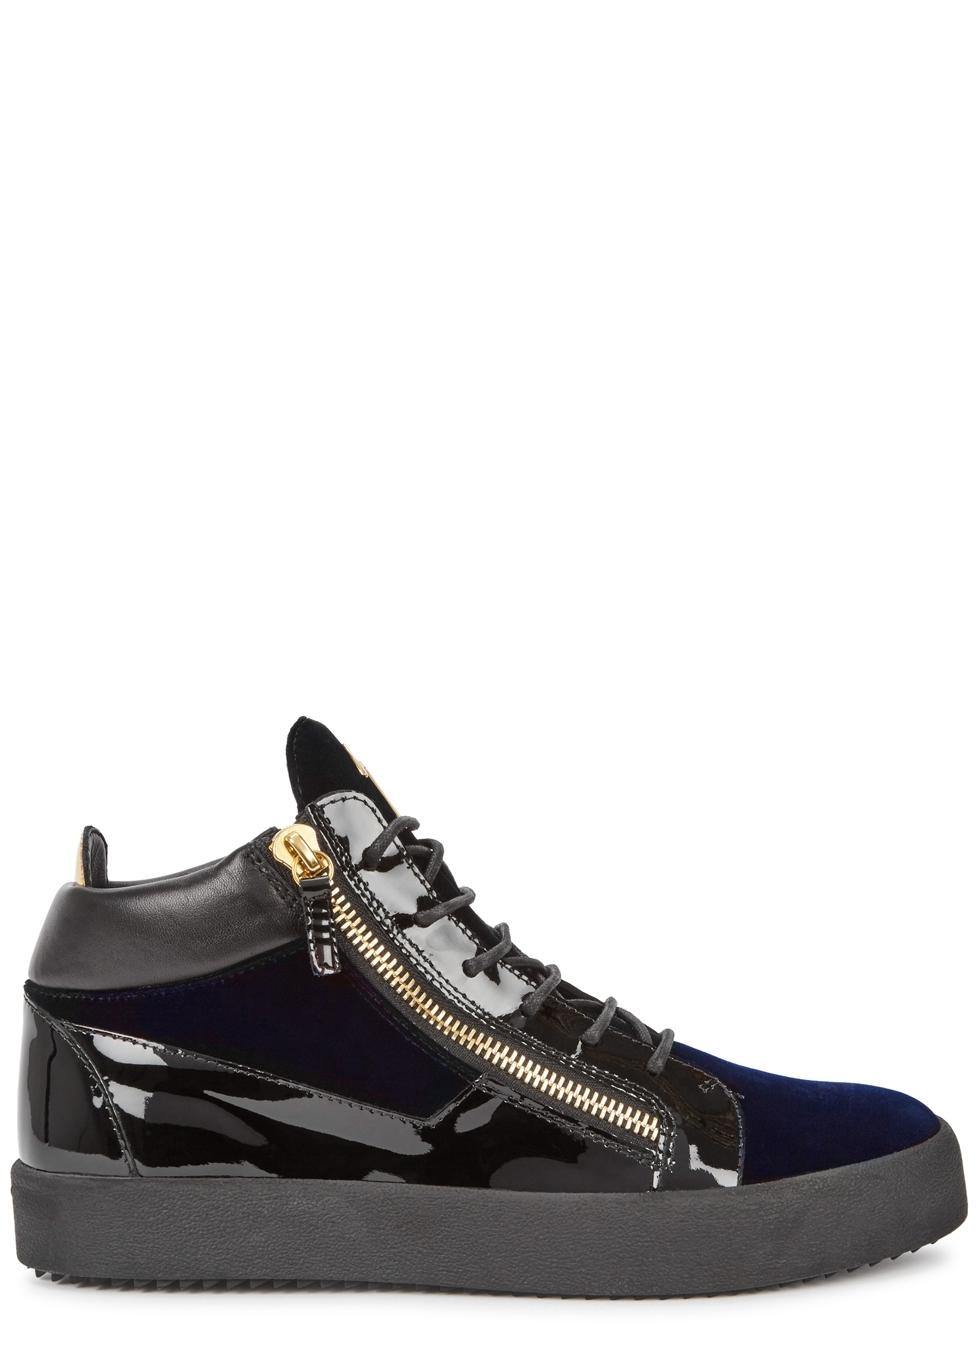 4fd9224f616c3 Giuseppe Zanotti Black / Navy Kriss Velvet and Patent Leather Sneakers  Sneakers Size EU 39.5 (